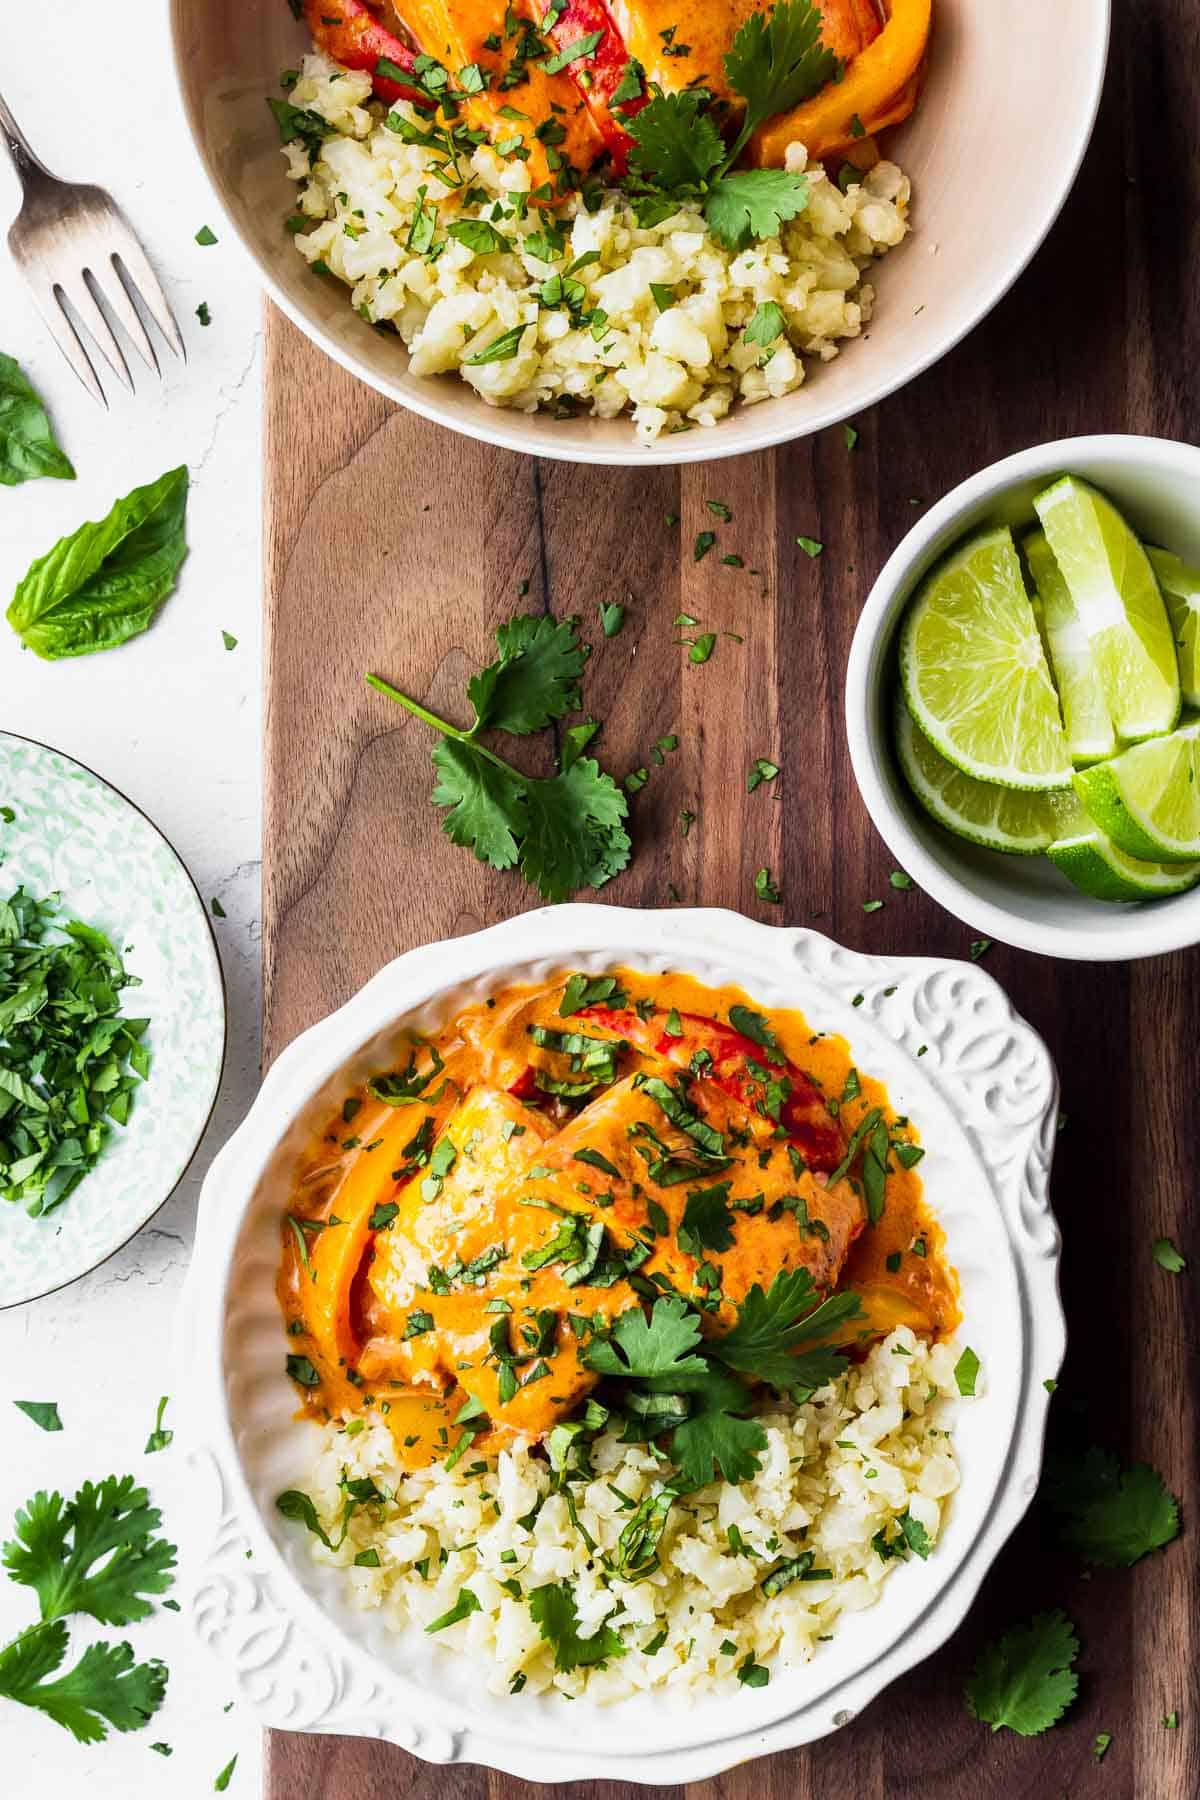 Overhead view of two bowls of cauliflower rice and red curry salmon on a wood board with herbs and limes around it